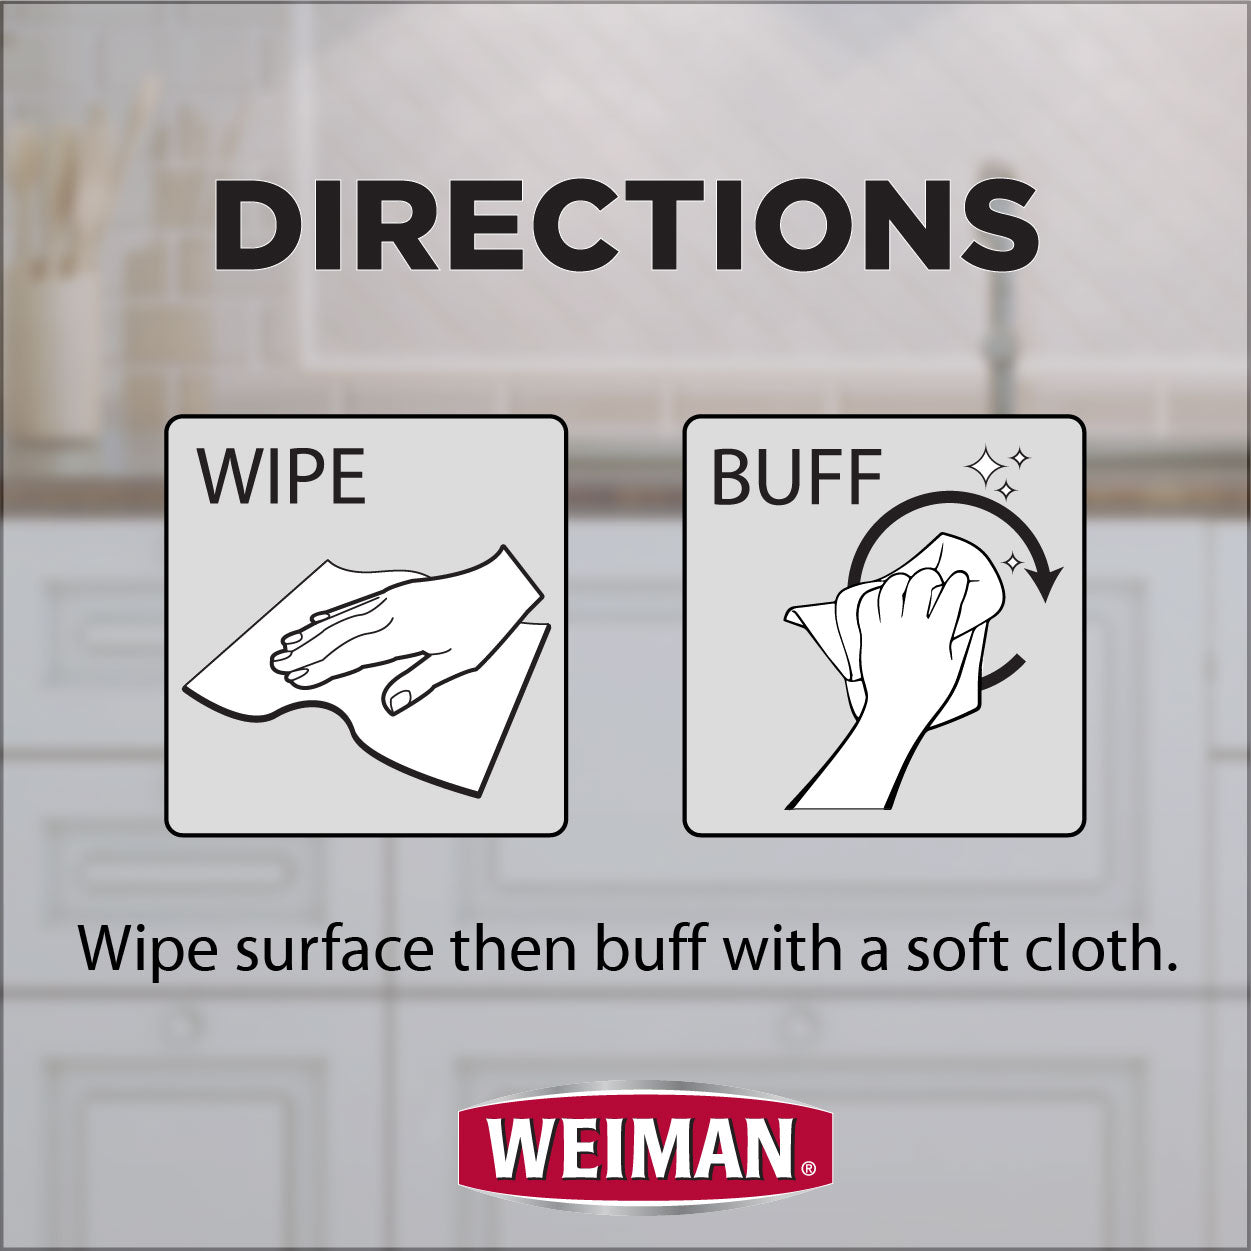 Weiman Stainless Steel Cleaner Wipes - 30 Count - FLJ CORPORATIONS